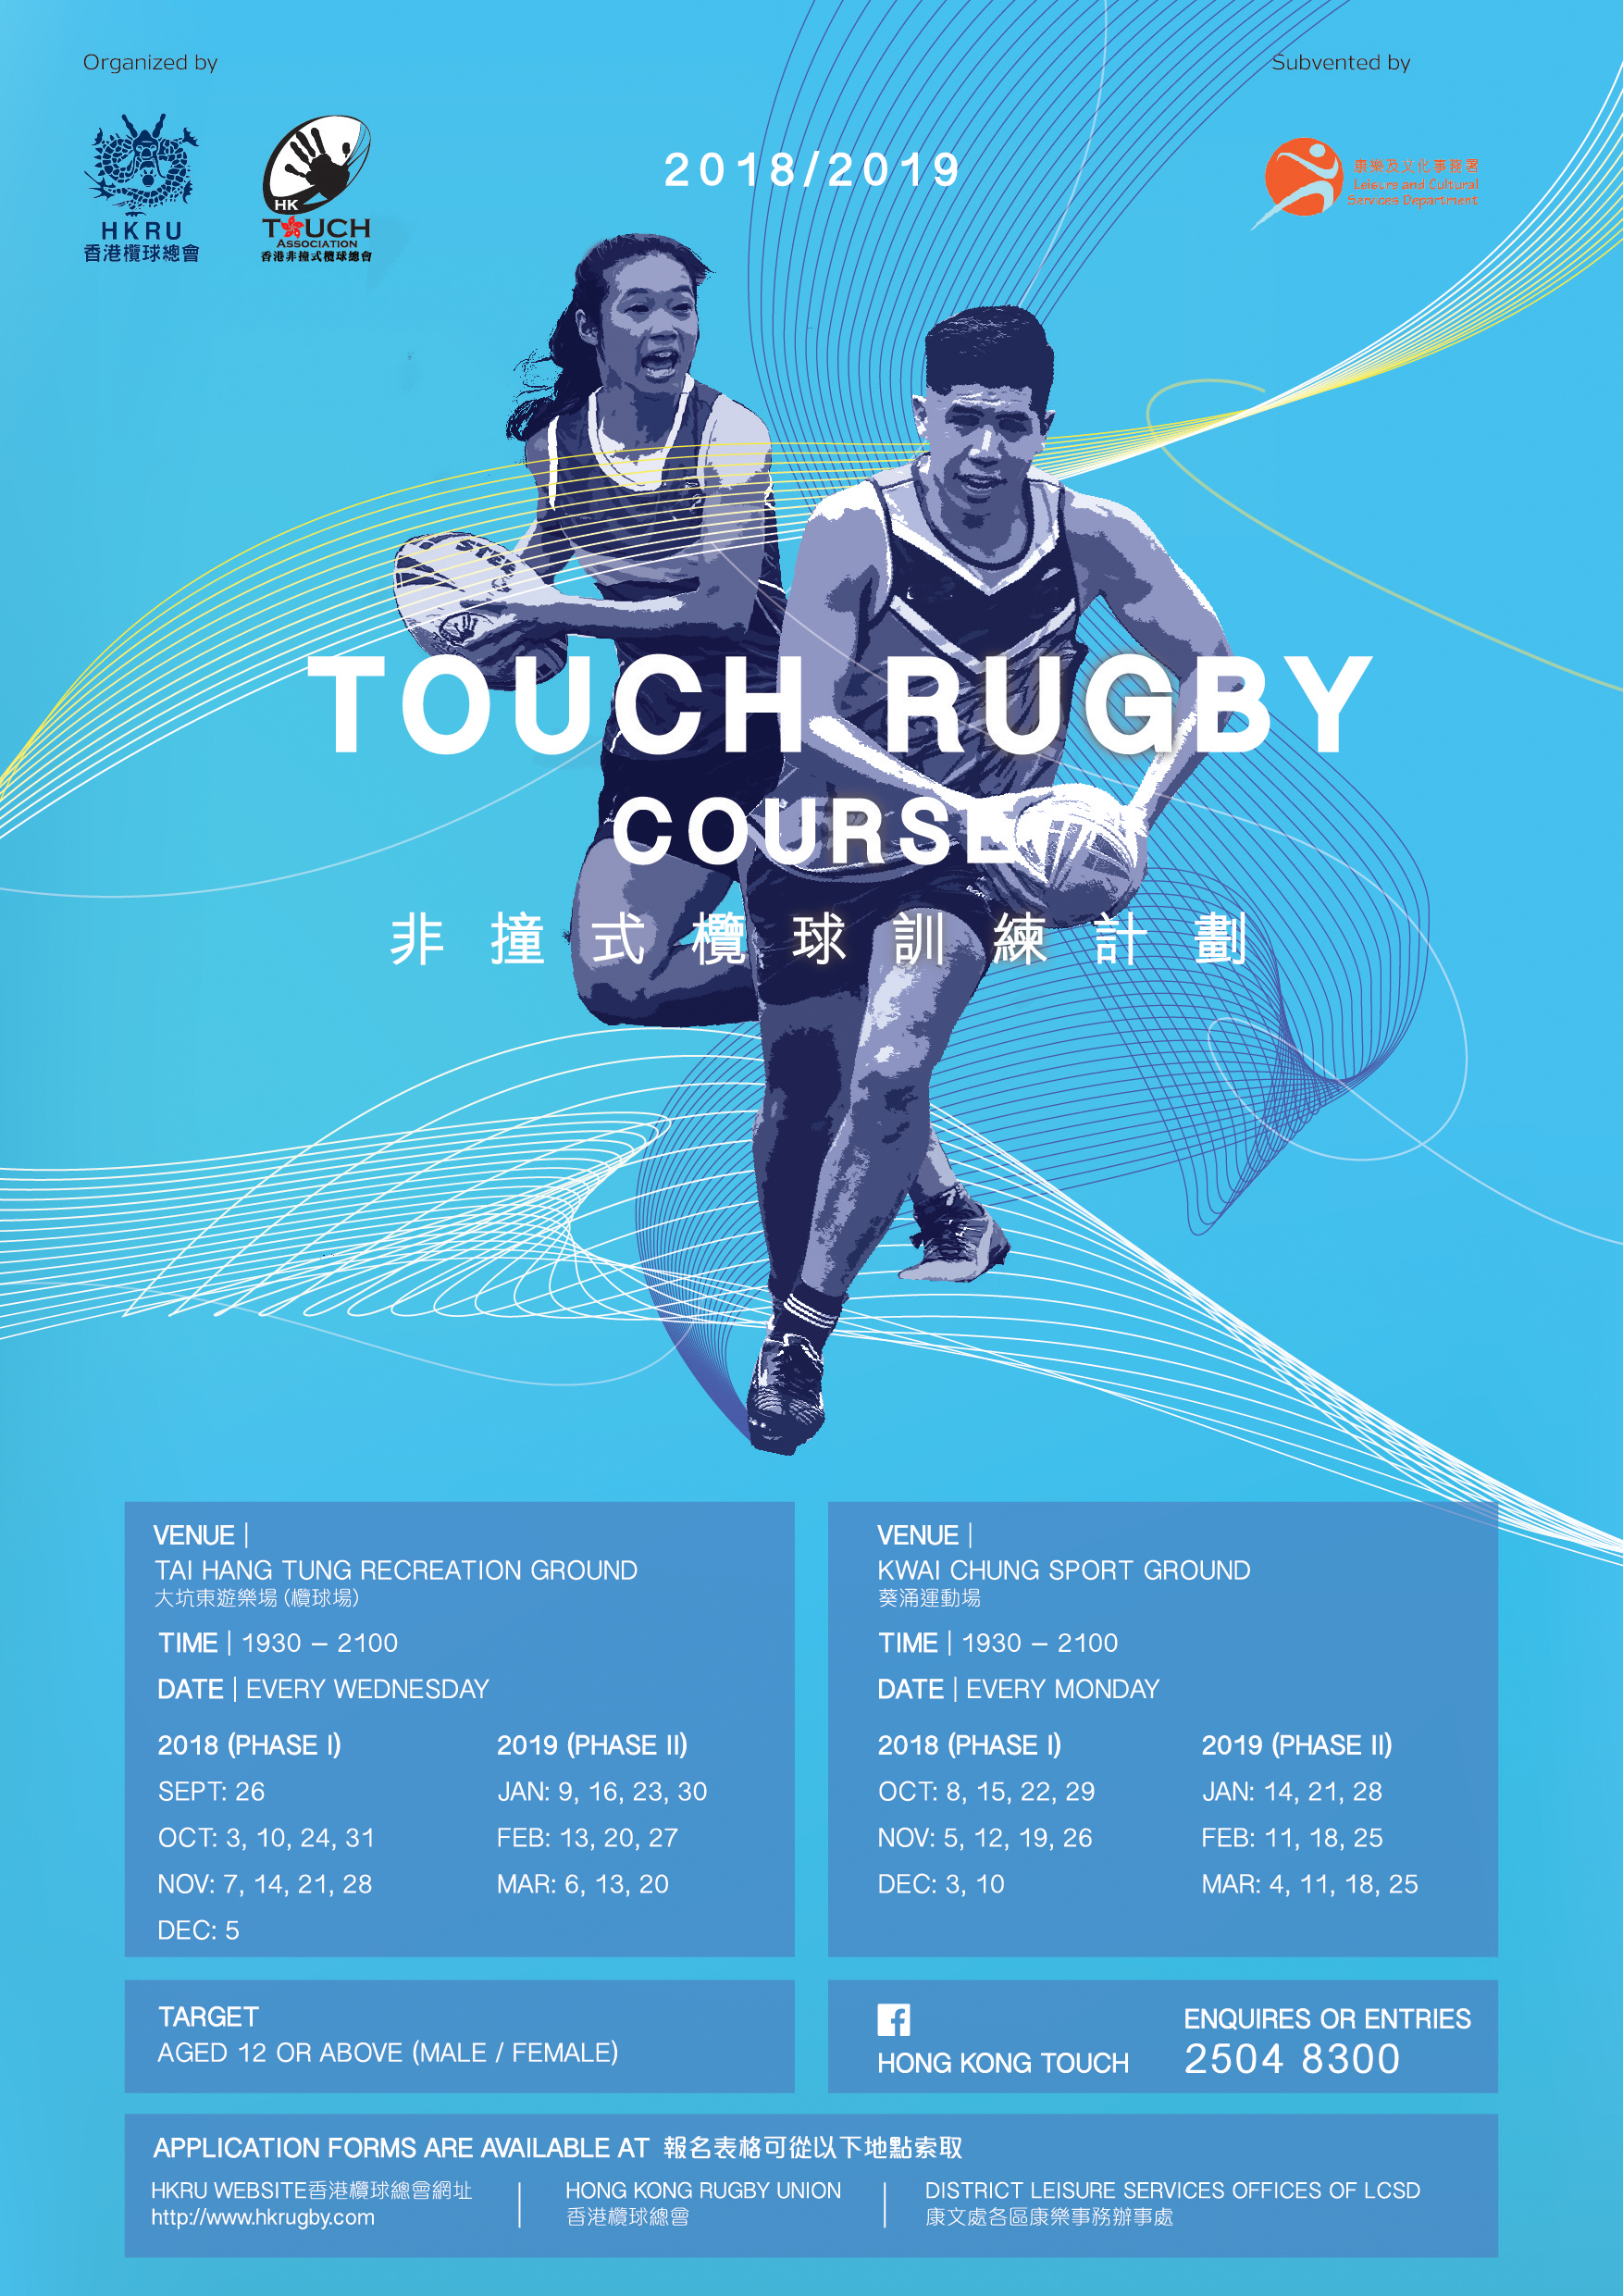 Touch Rugby Course 2018/19 thumbnail